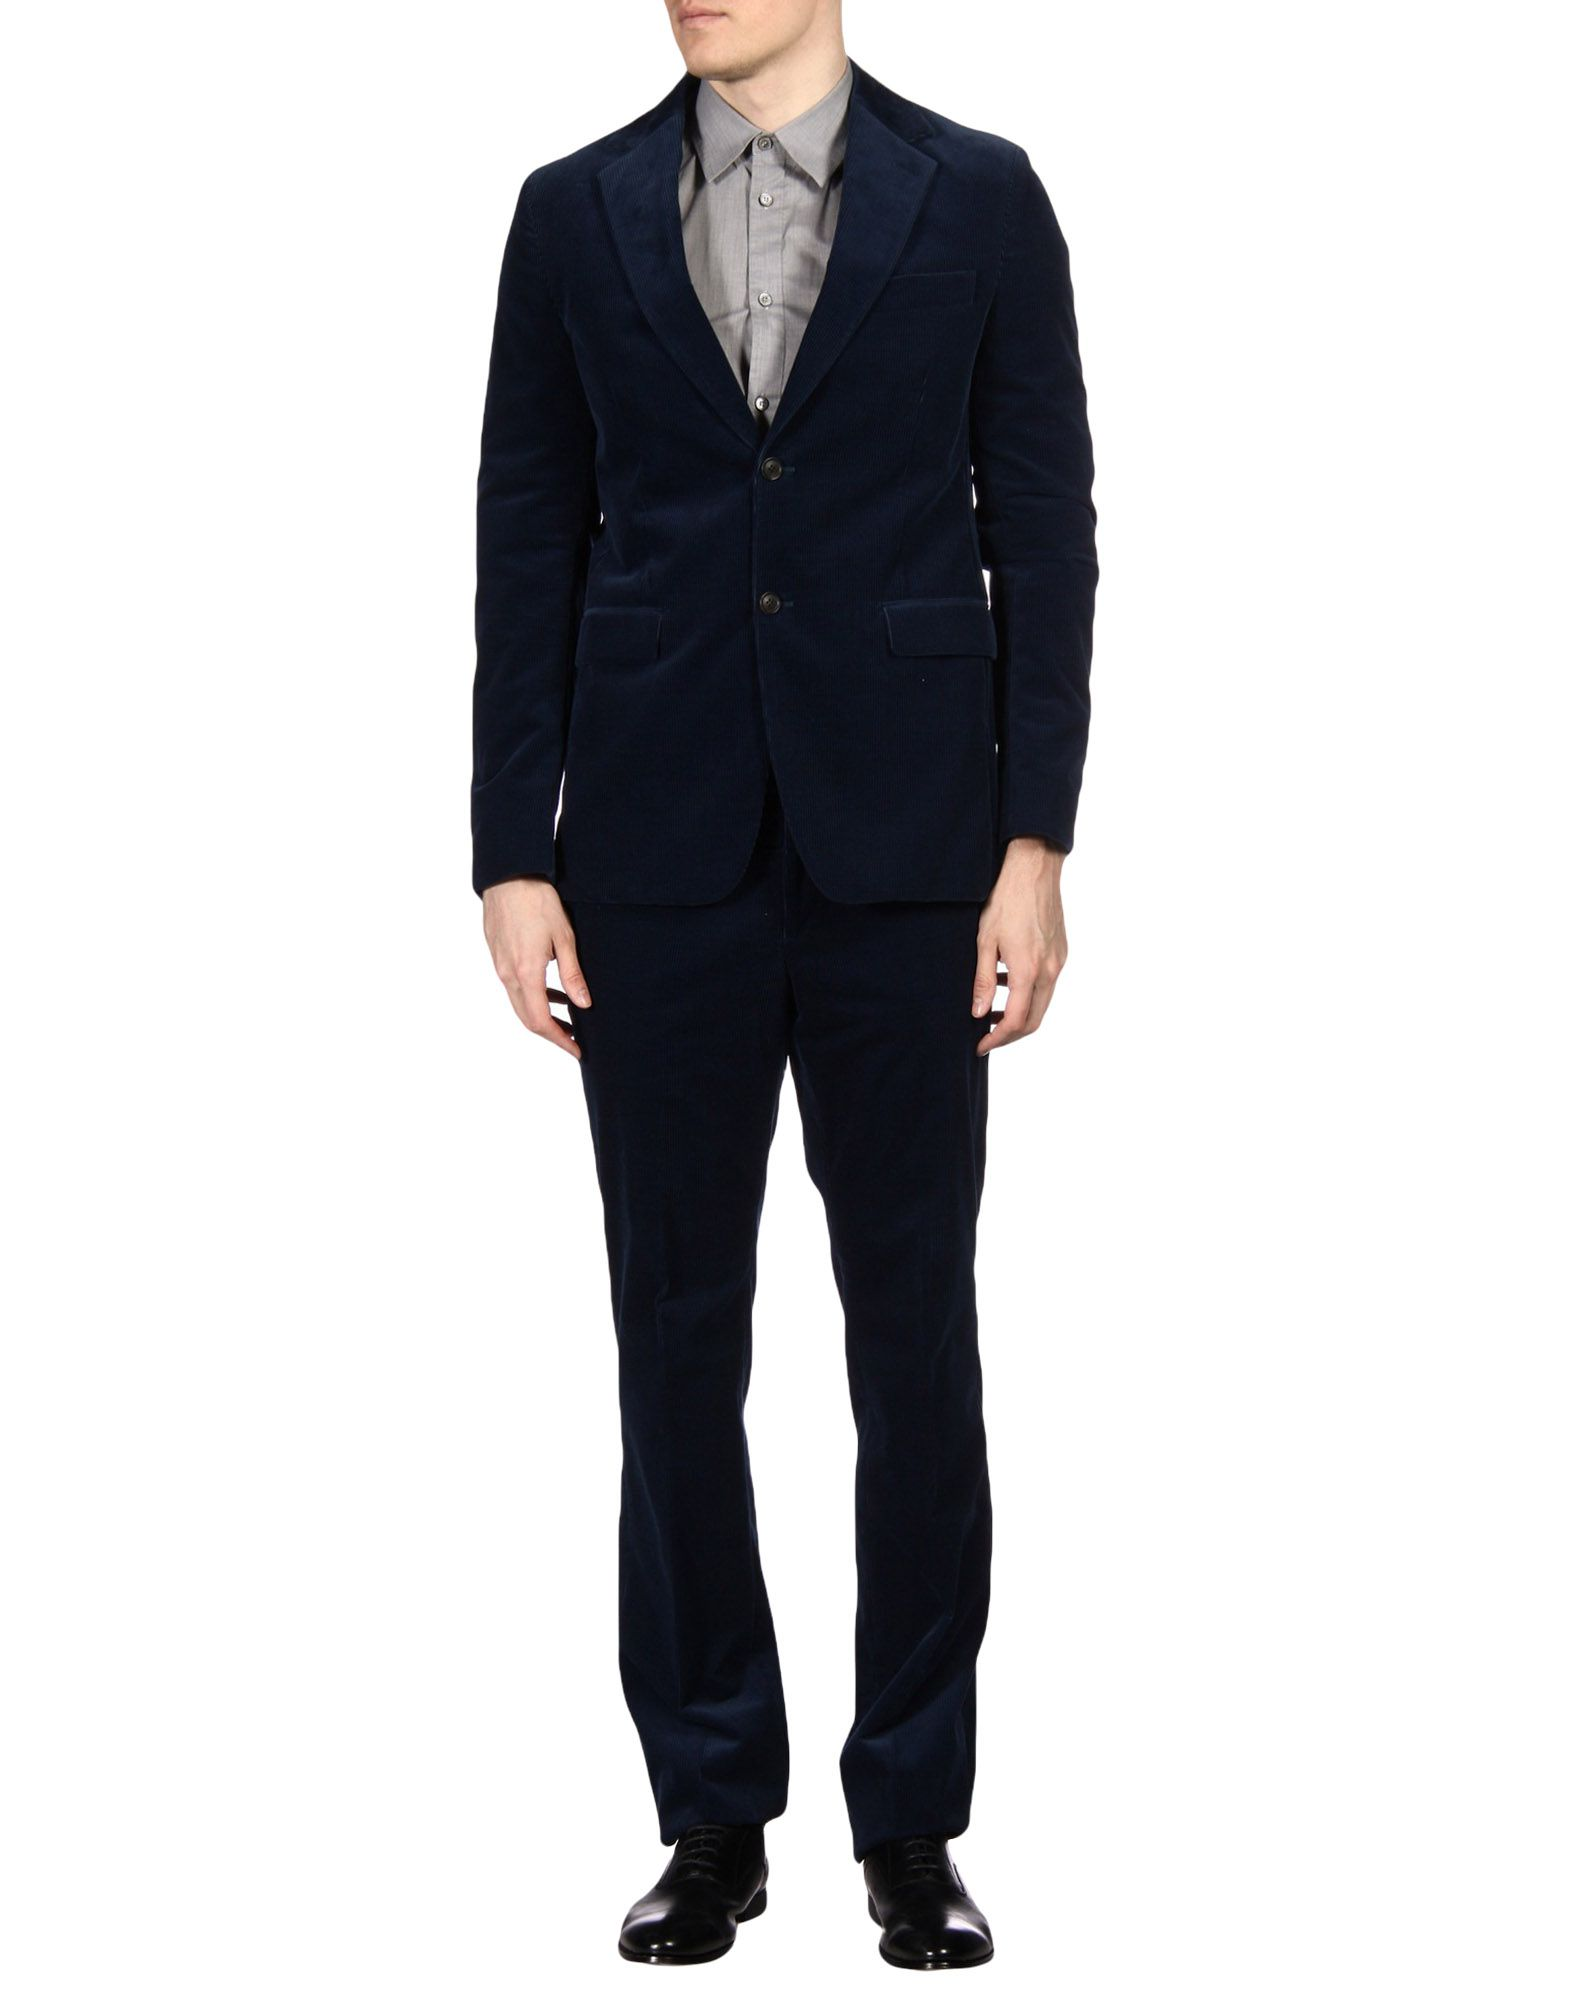 FAÇONNABLE Suits in Dark Blue